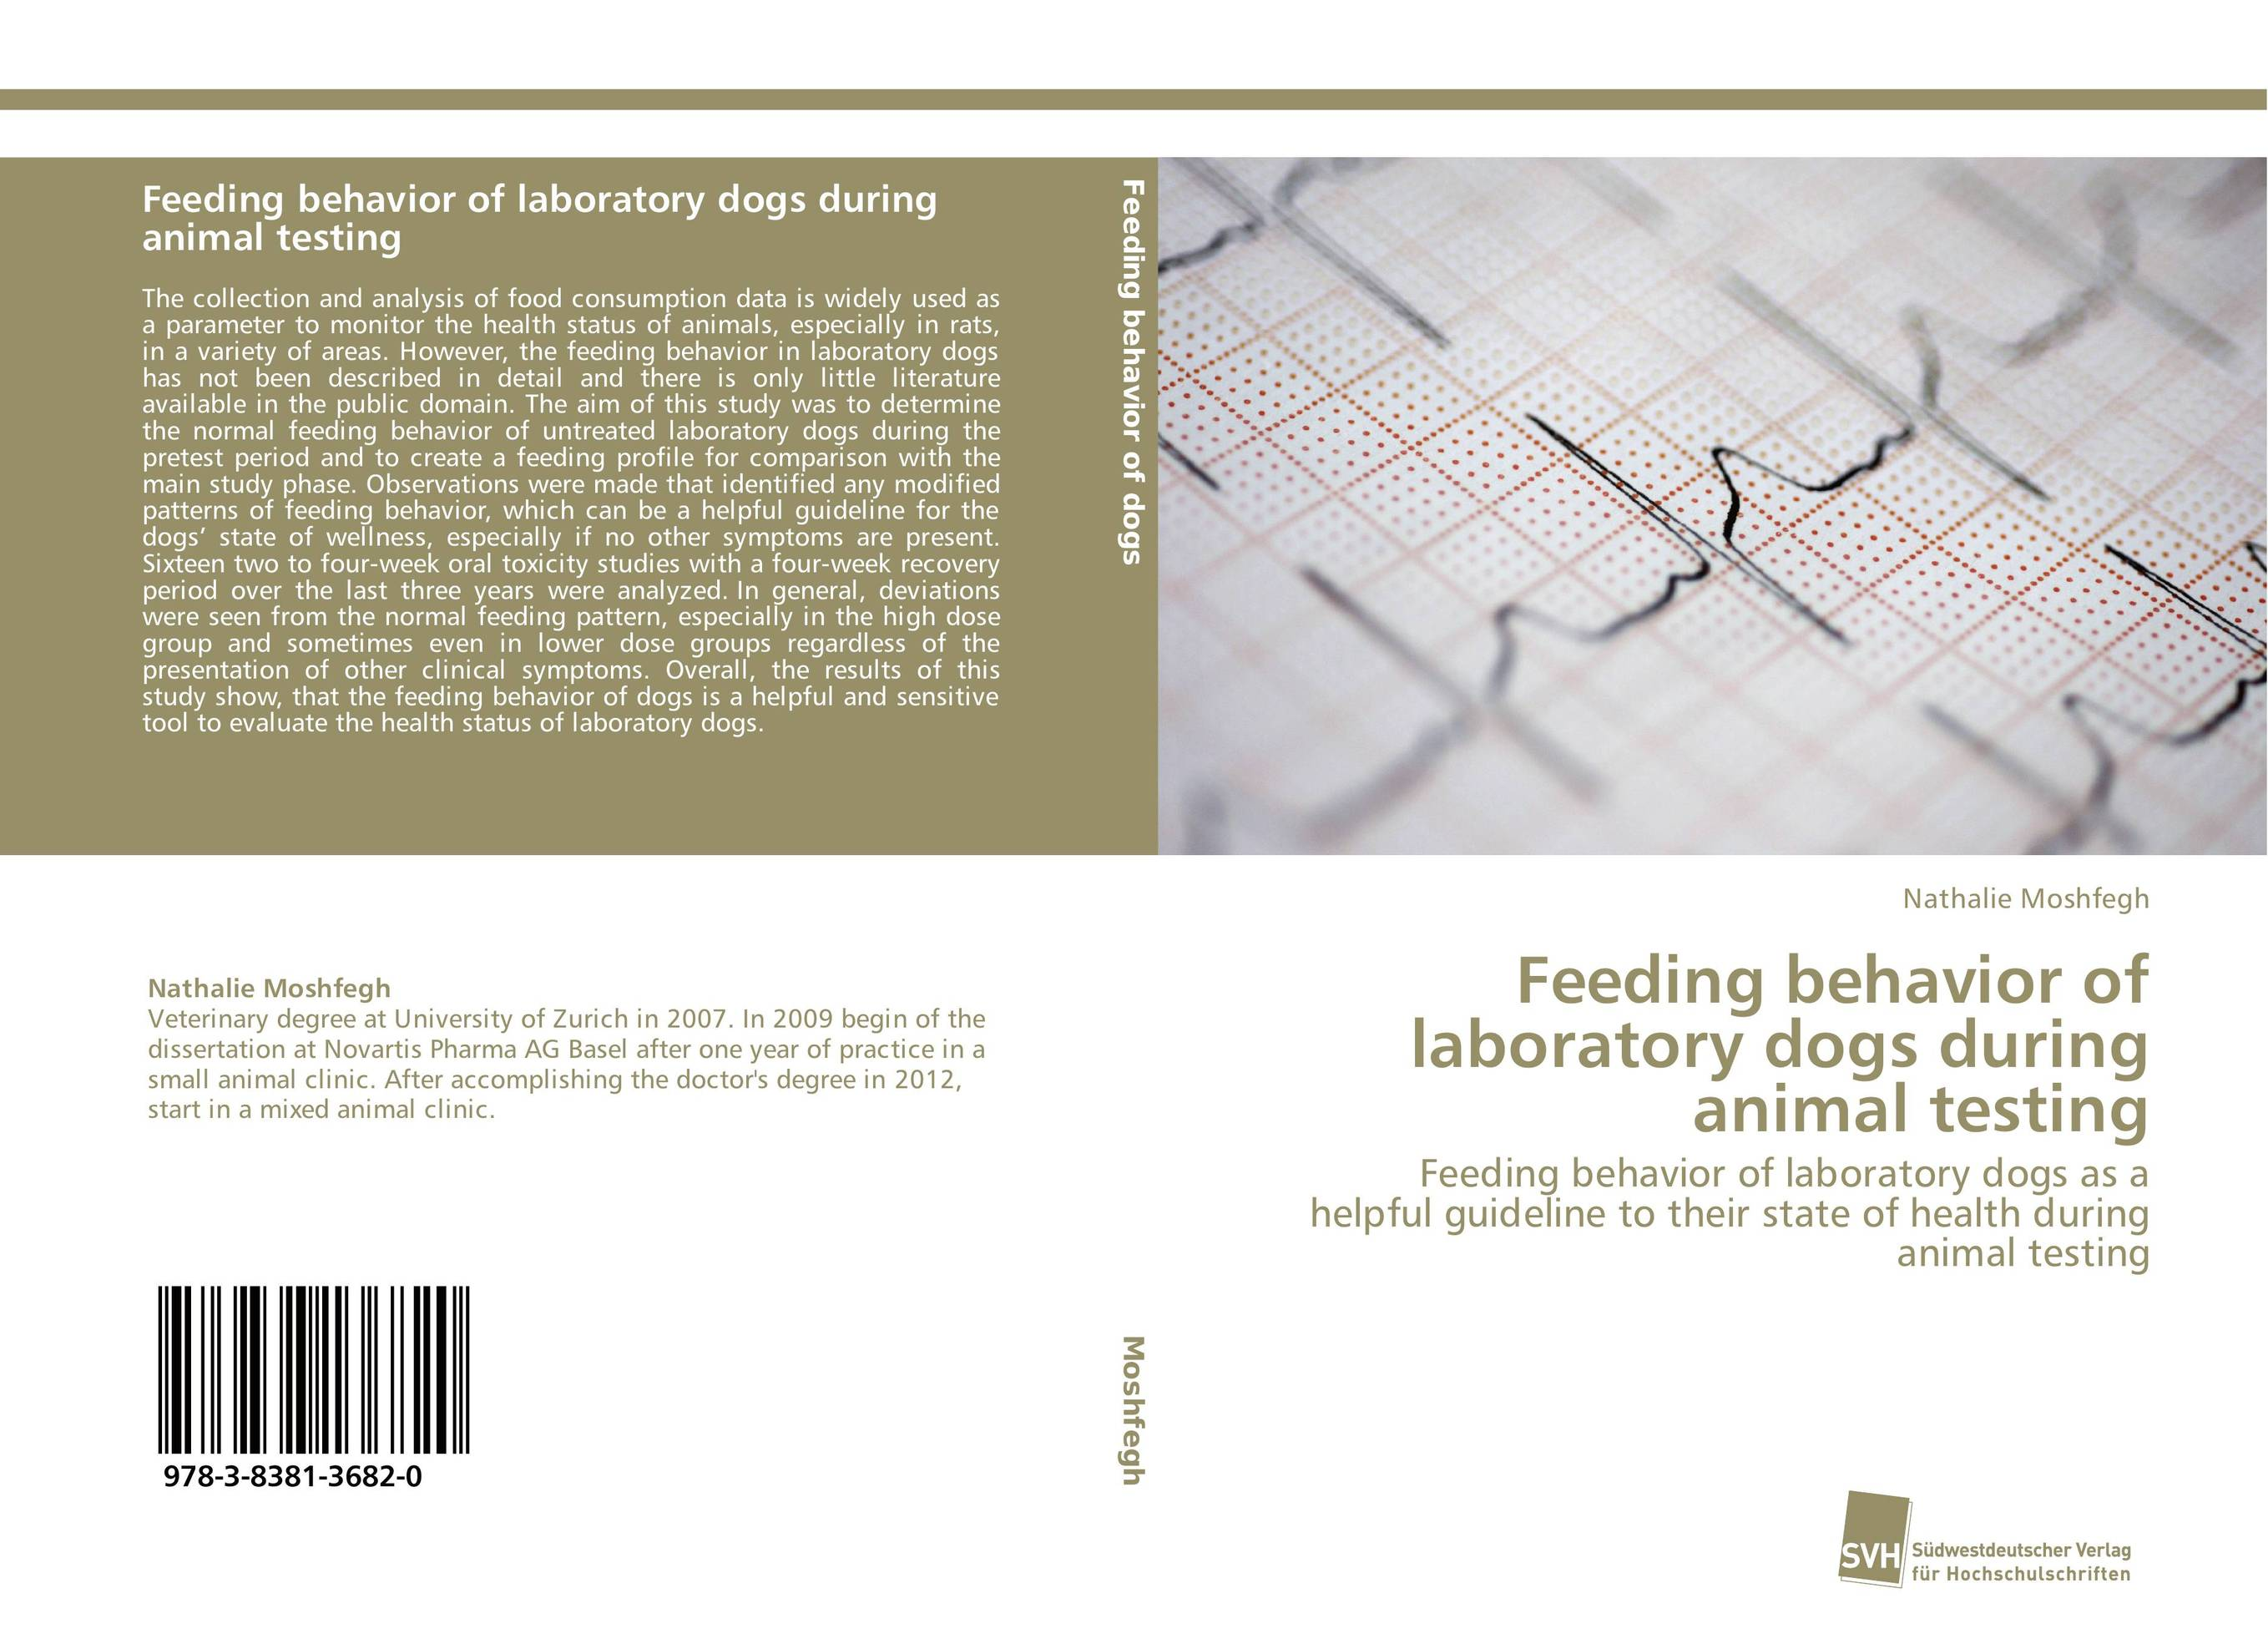 Feeding behavior of laboratory dogs during animal testing neoplasms in dogs